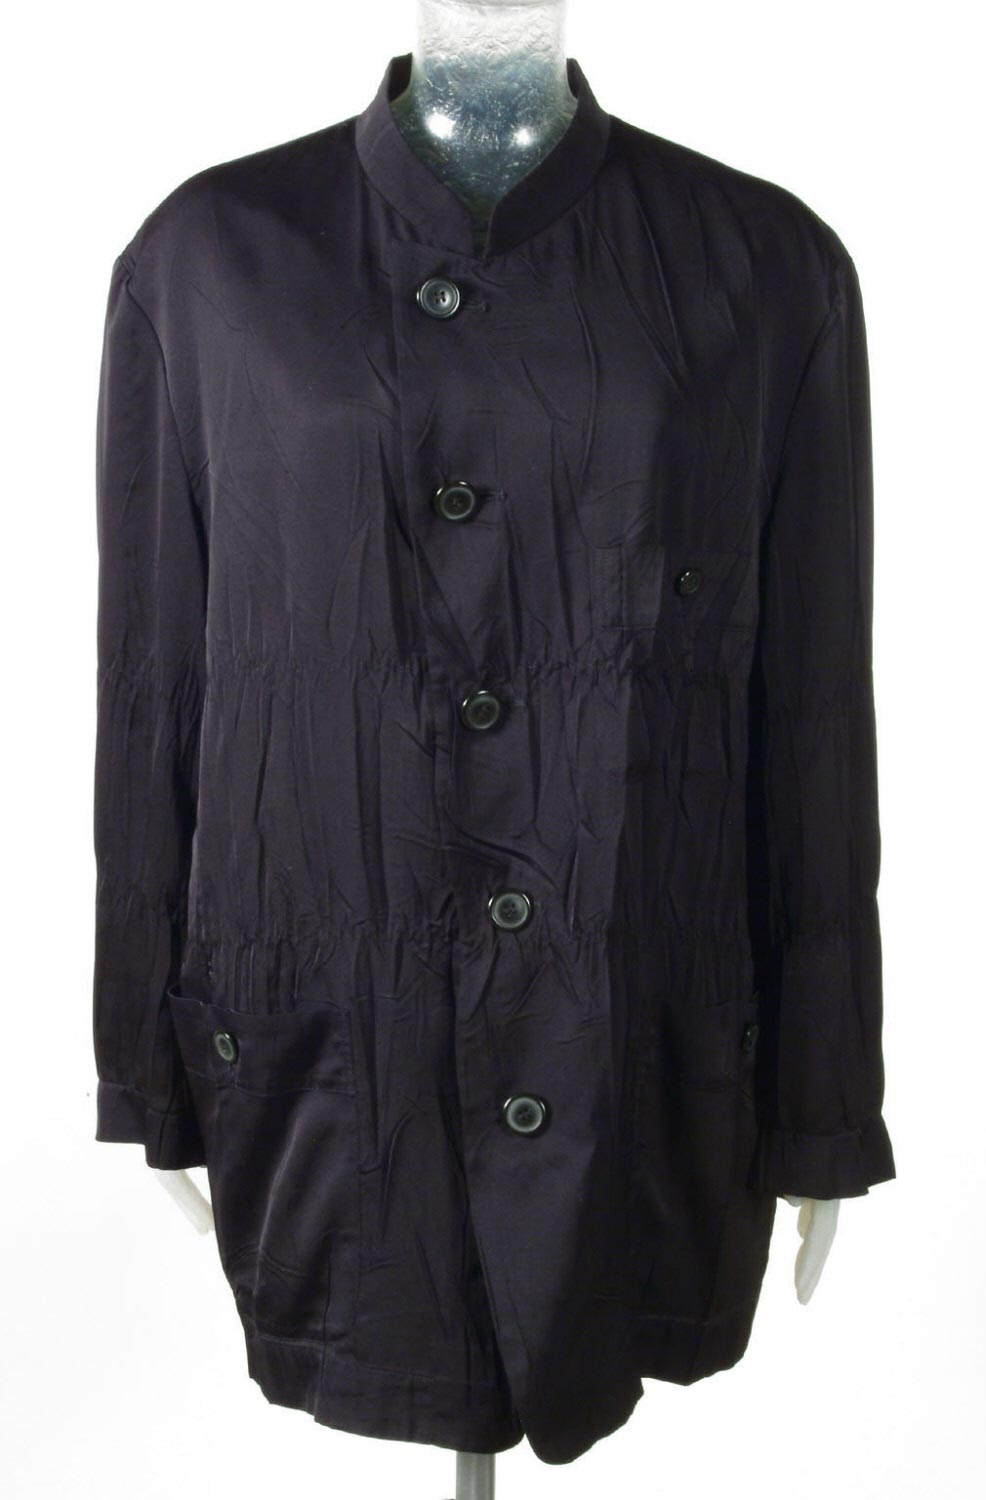 Woman's Unstructured Jacket